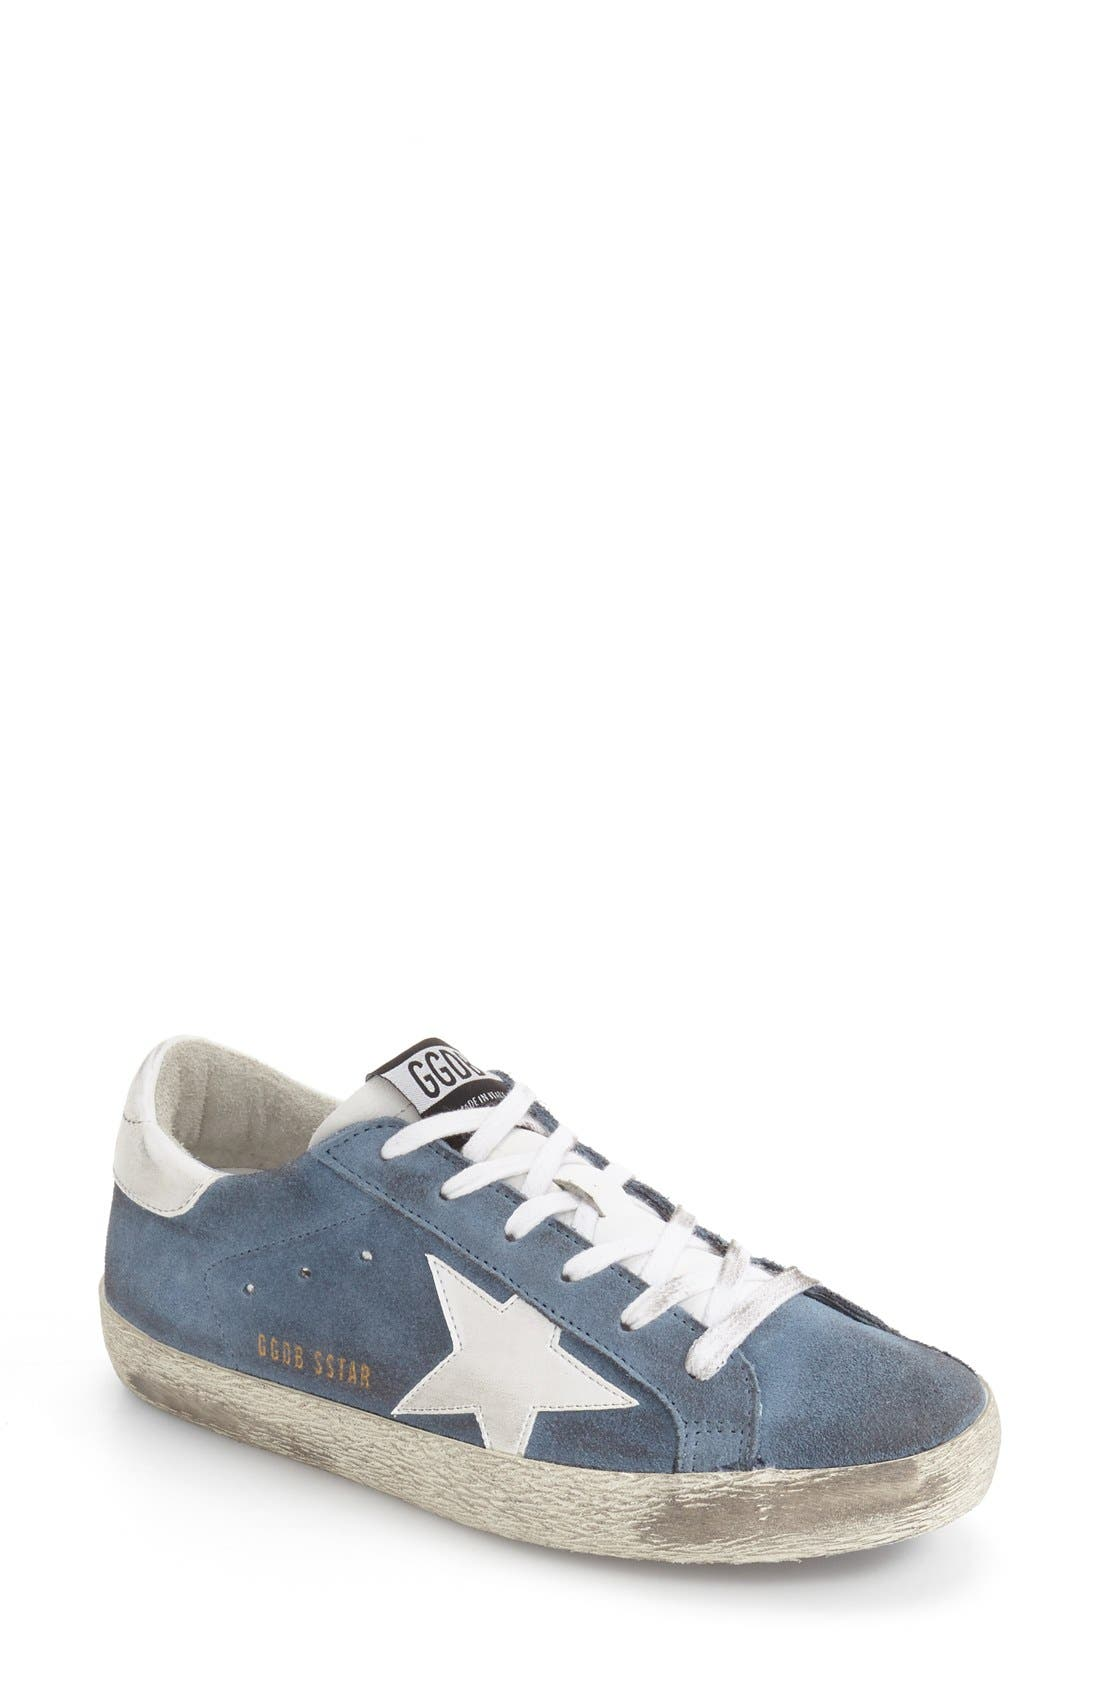 Alternate Image 1 Selected - Golden Goose 'Superstar' Low Top Sneaker (Women)